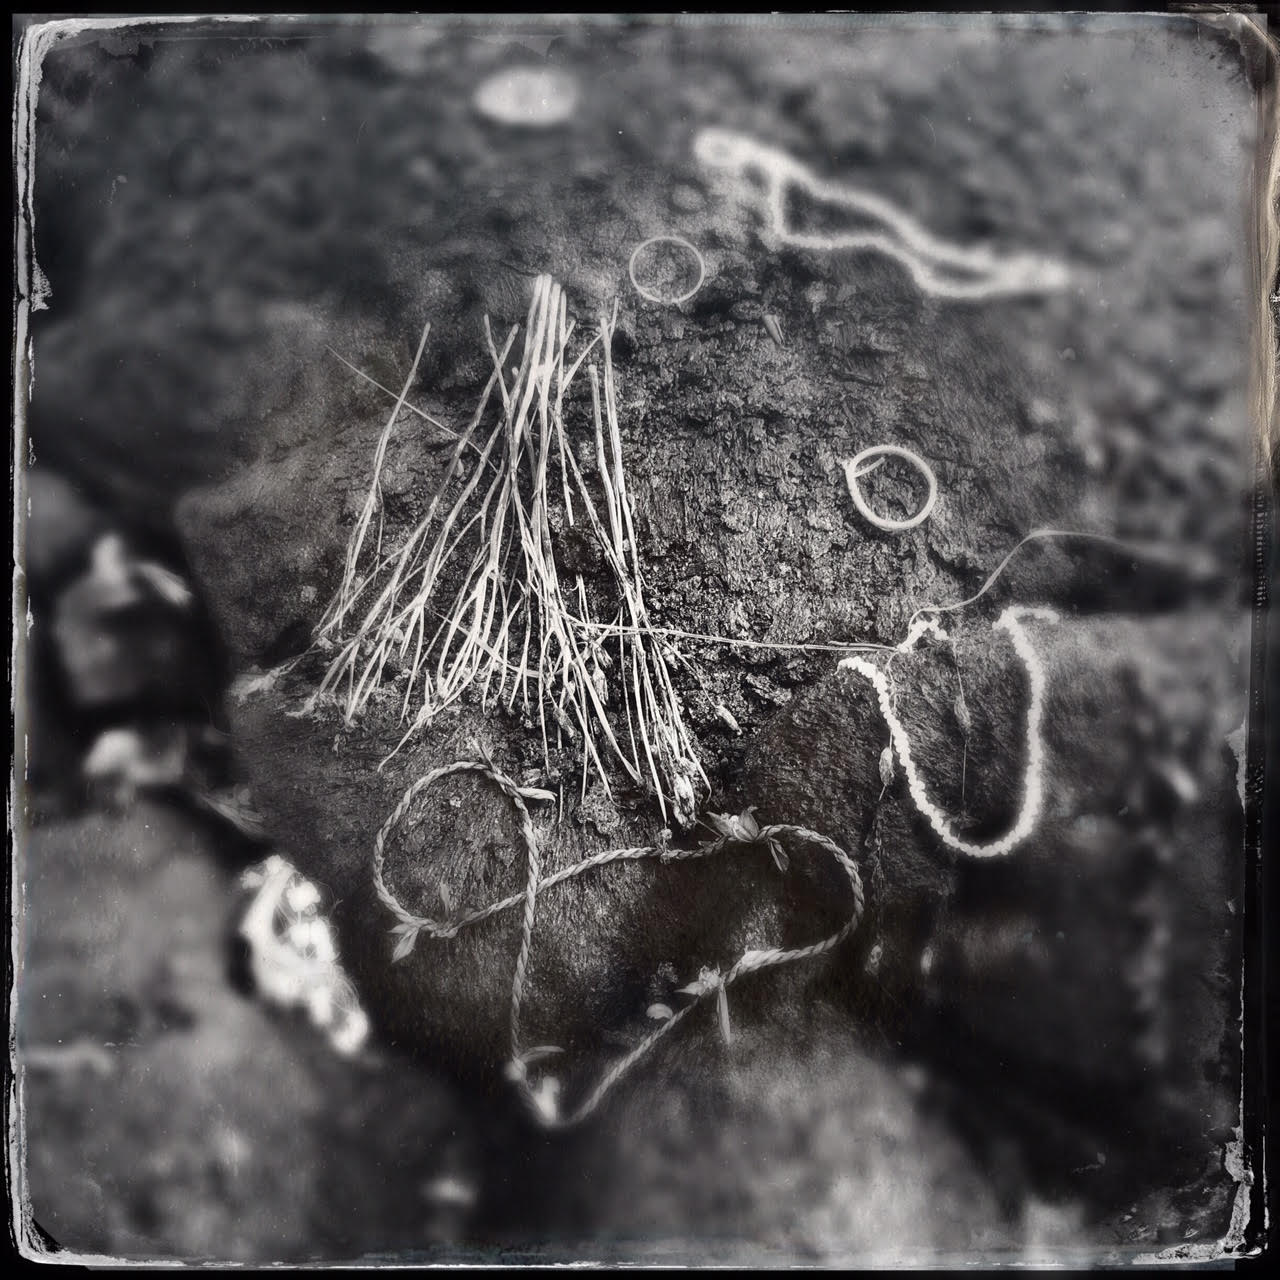 Constellation of Twists and Braids   offerings to Pele on the lava flow   Pahoa, Hawaii   February 2015